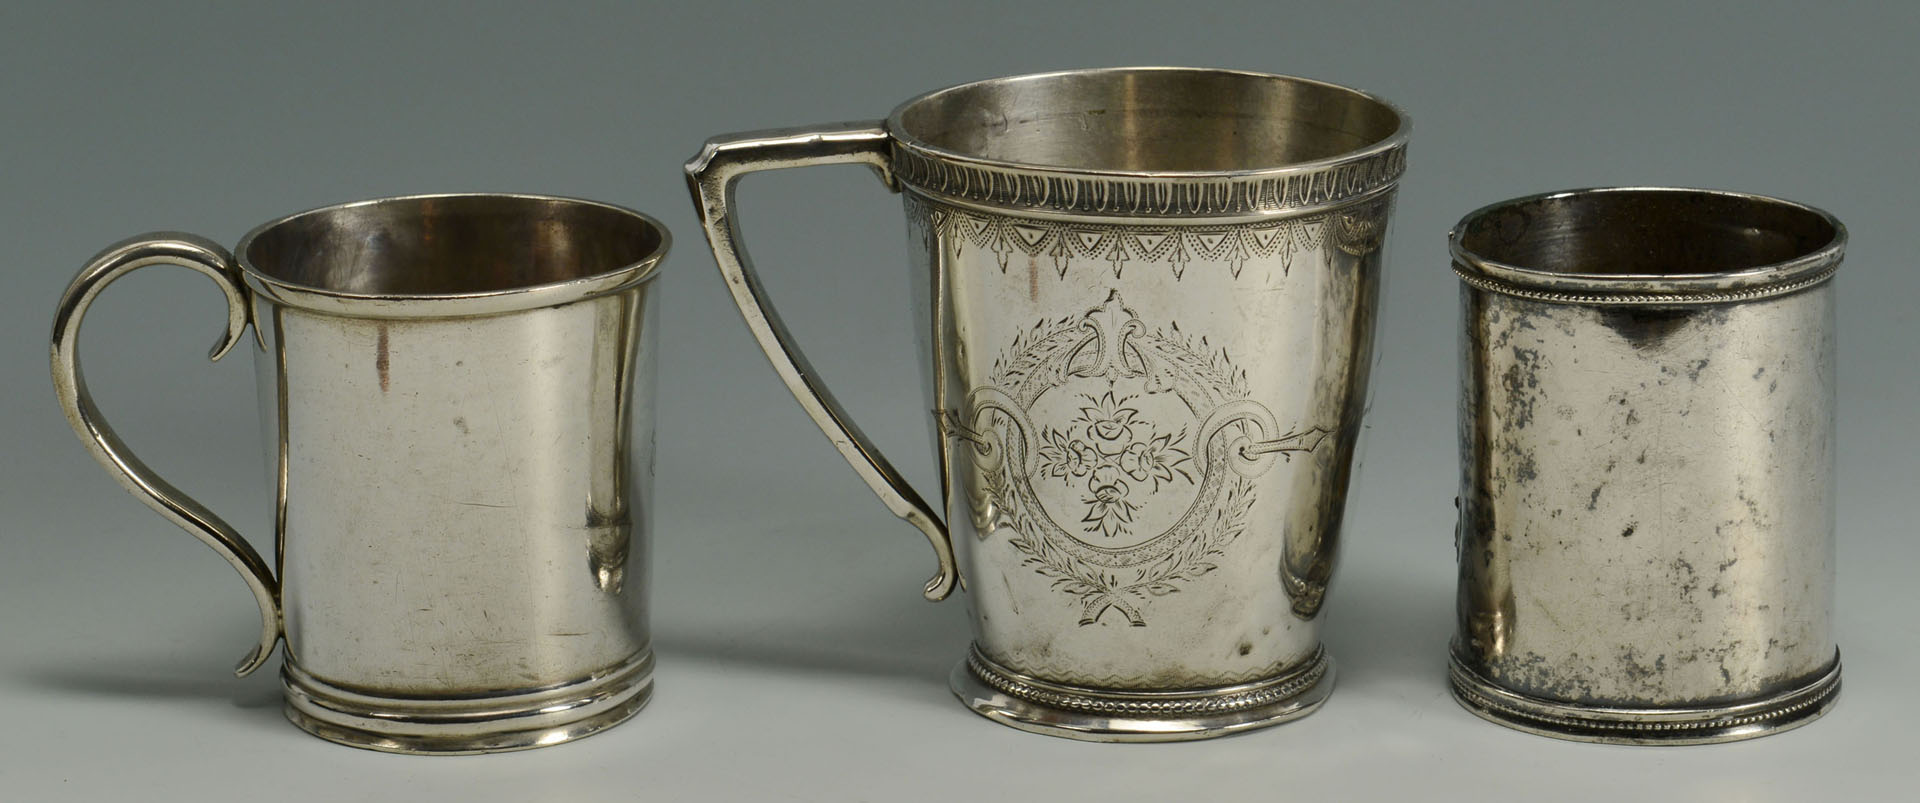 3 Coin Silver Cups and Silver Metal/Horn Ladle